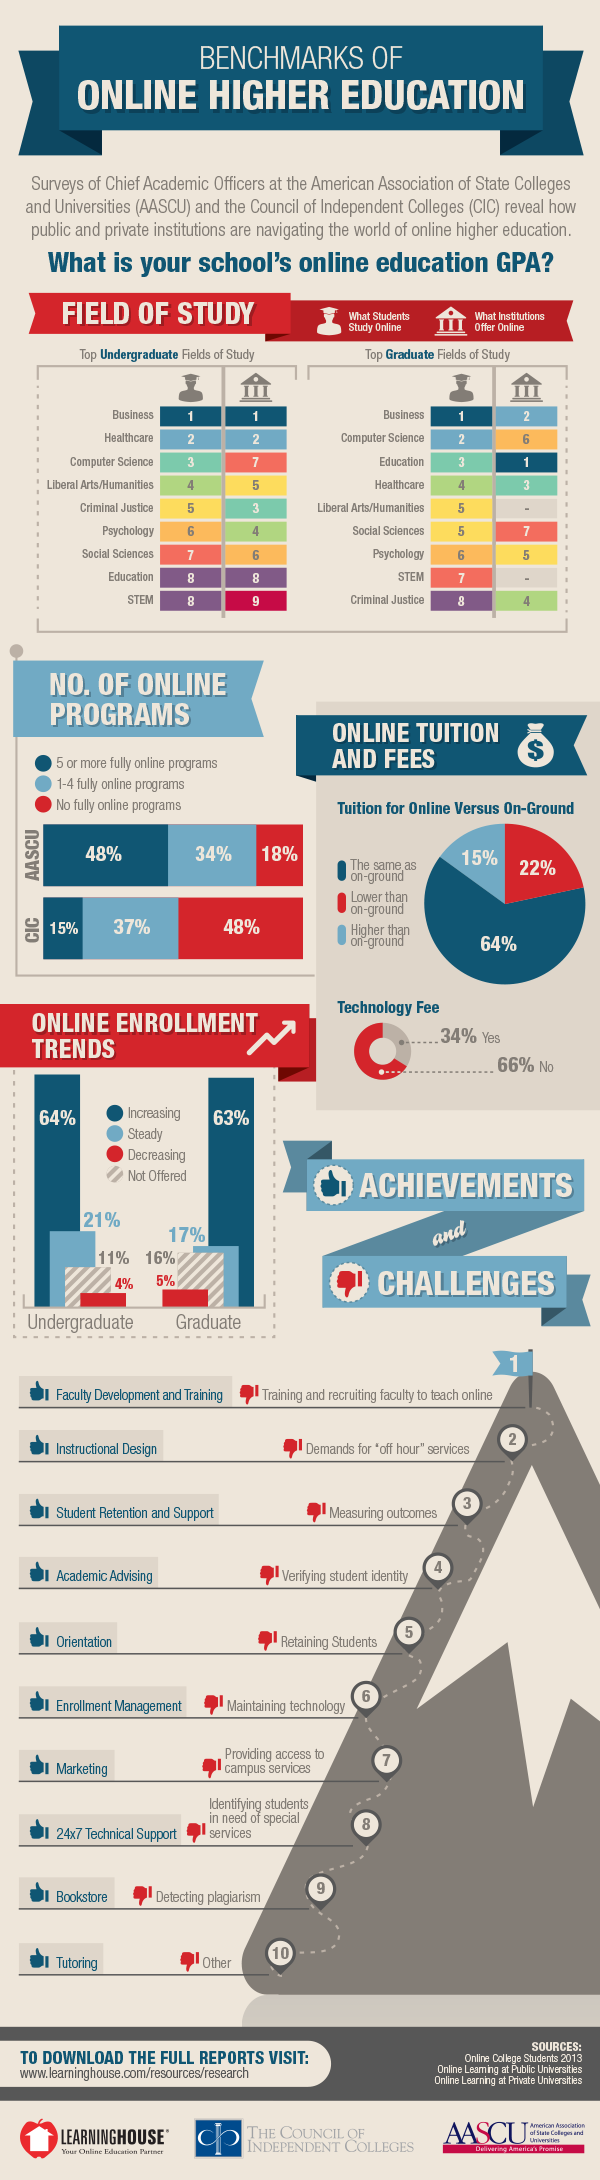 Benchmarks of Online higher education